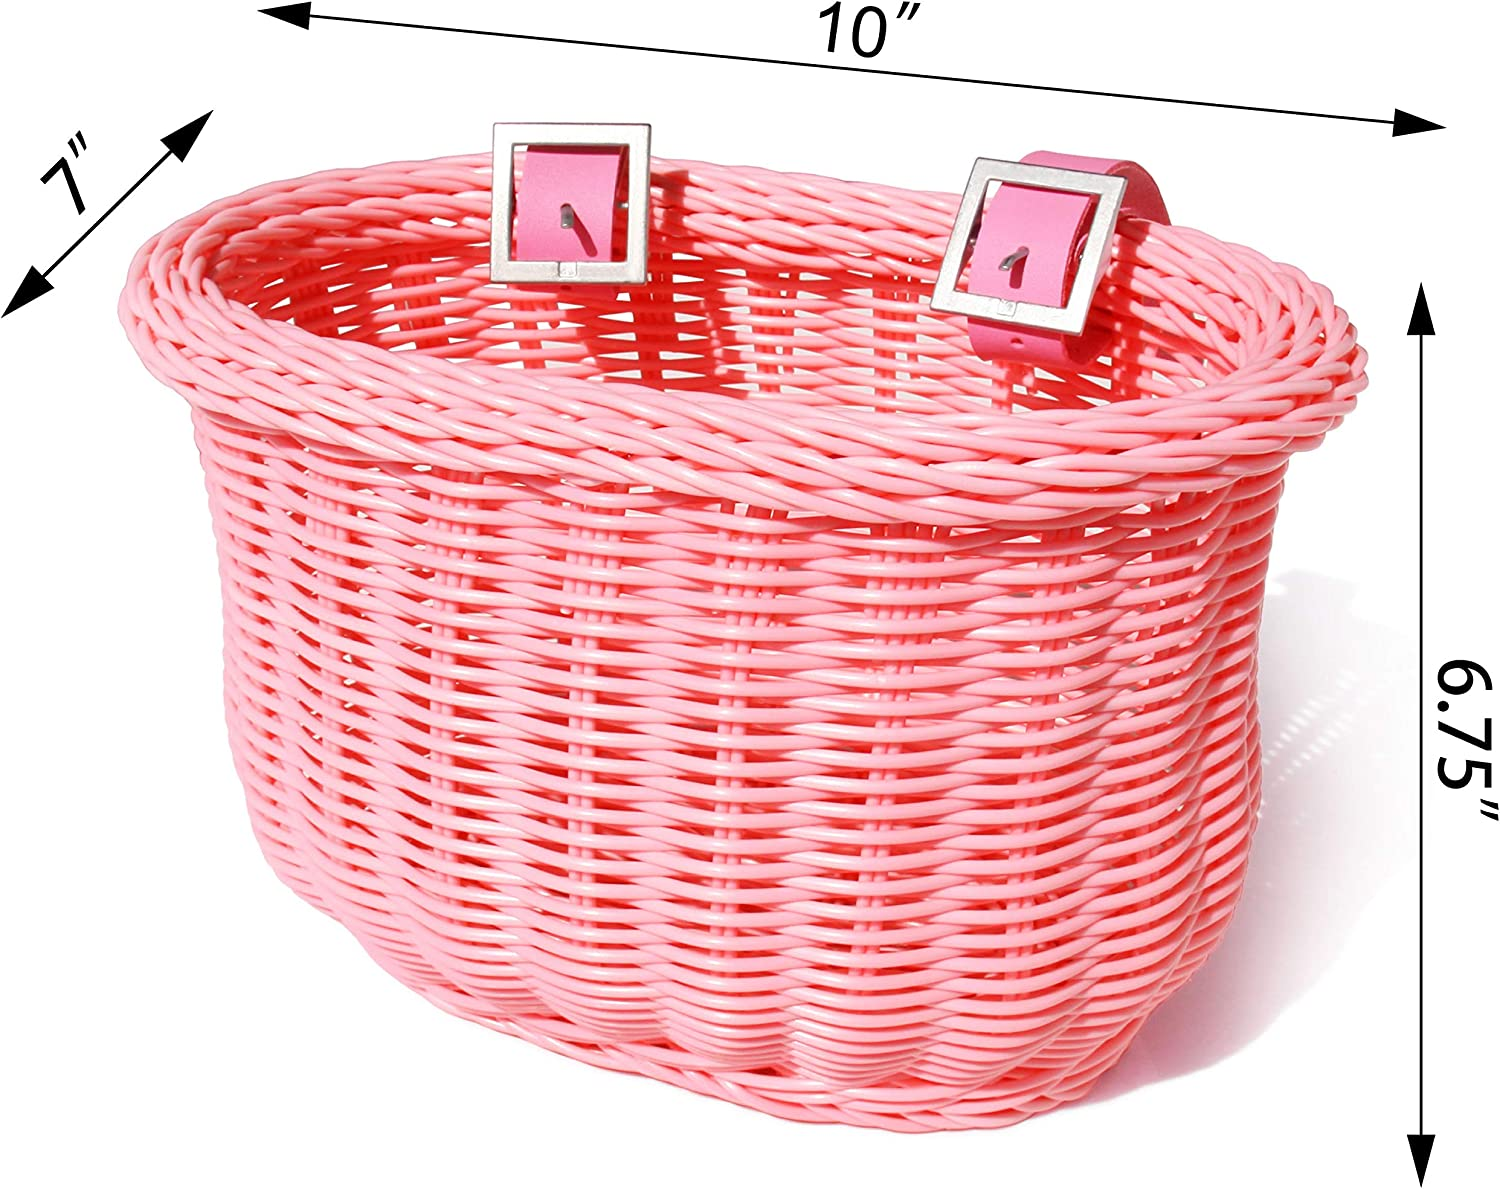 Solid Bicycle Front Basket Wear Resistant Shopping Holder Cycling Children Kids